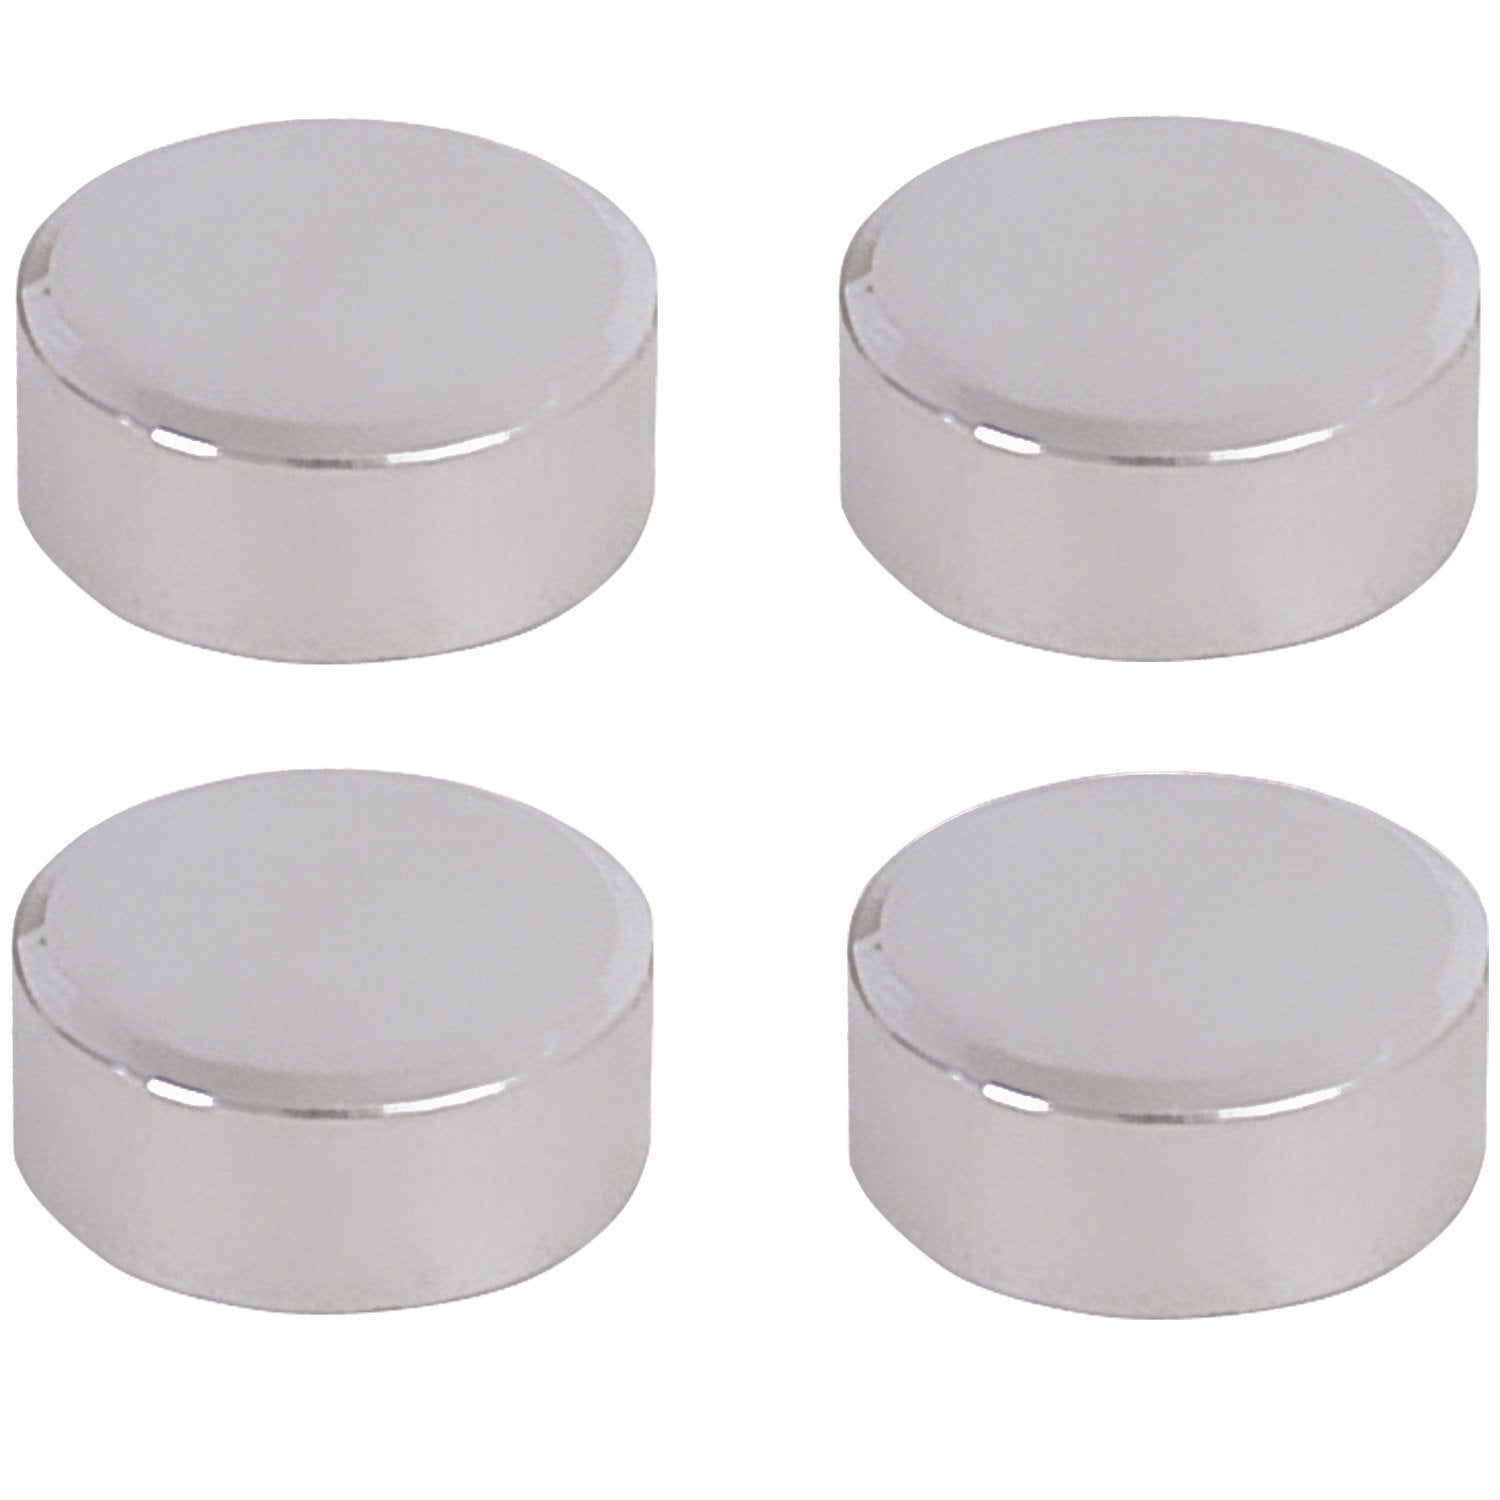 Lot de 4 pattes glace rond chrom brillant leroy merlin - Glace murale pour salon ...